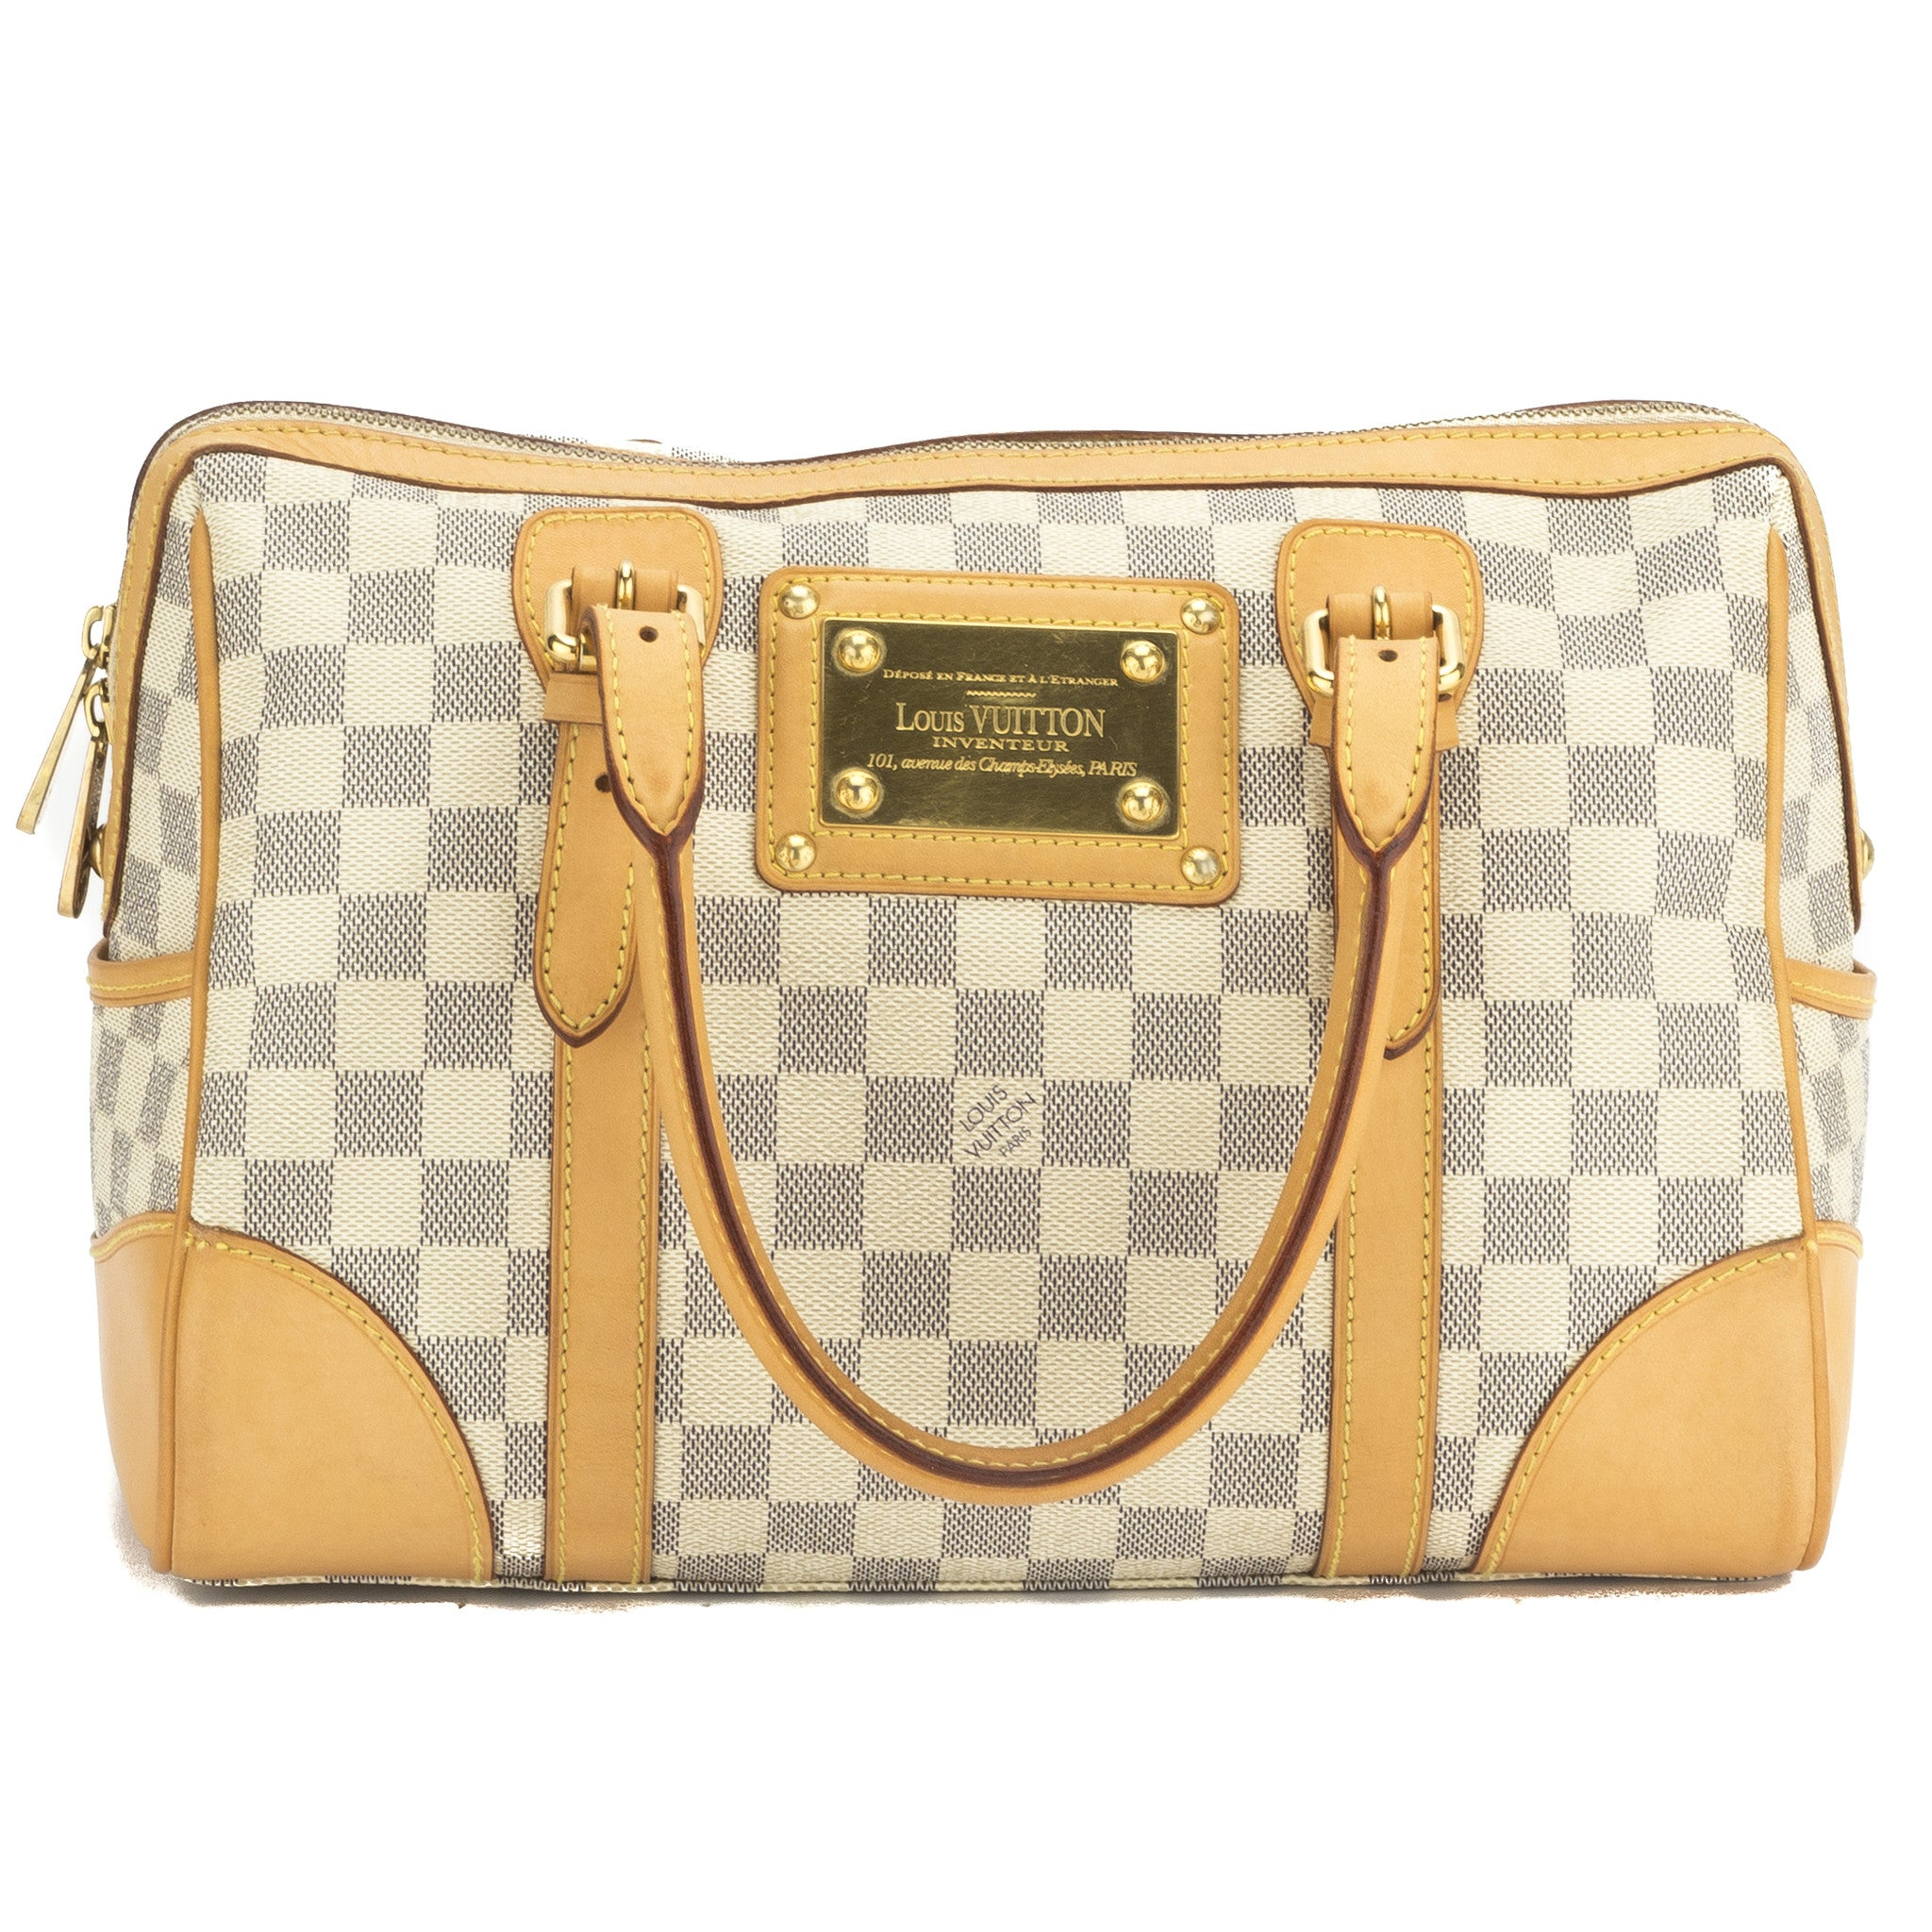 76e3b218811 https   www.luxedh.com products used-louis-vuitton-mandarin-epi ...